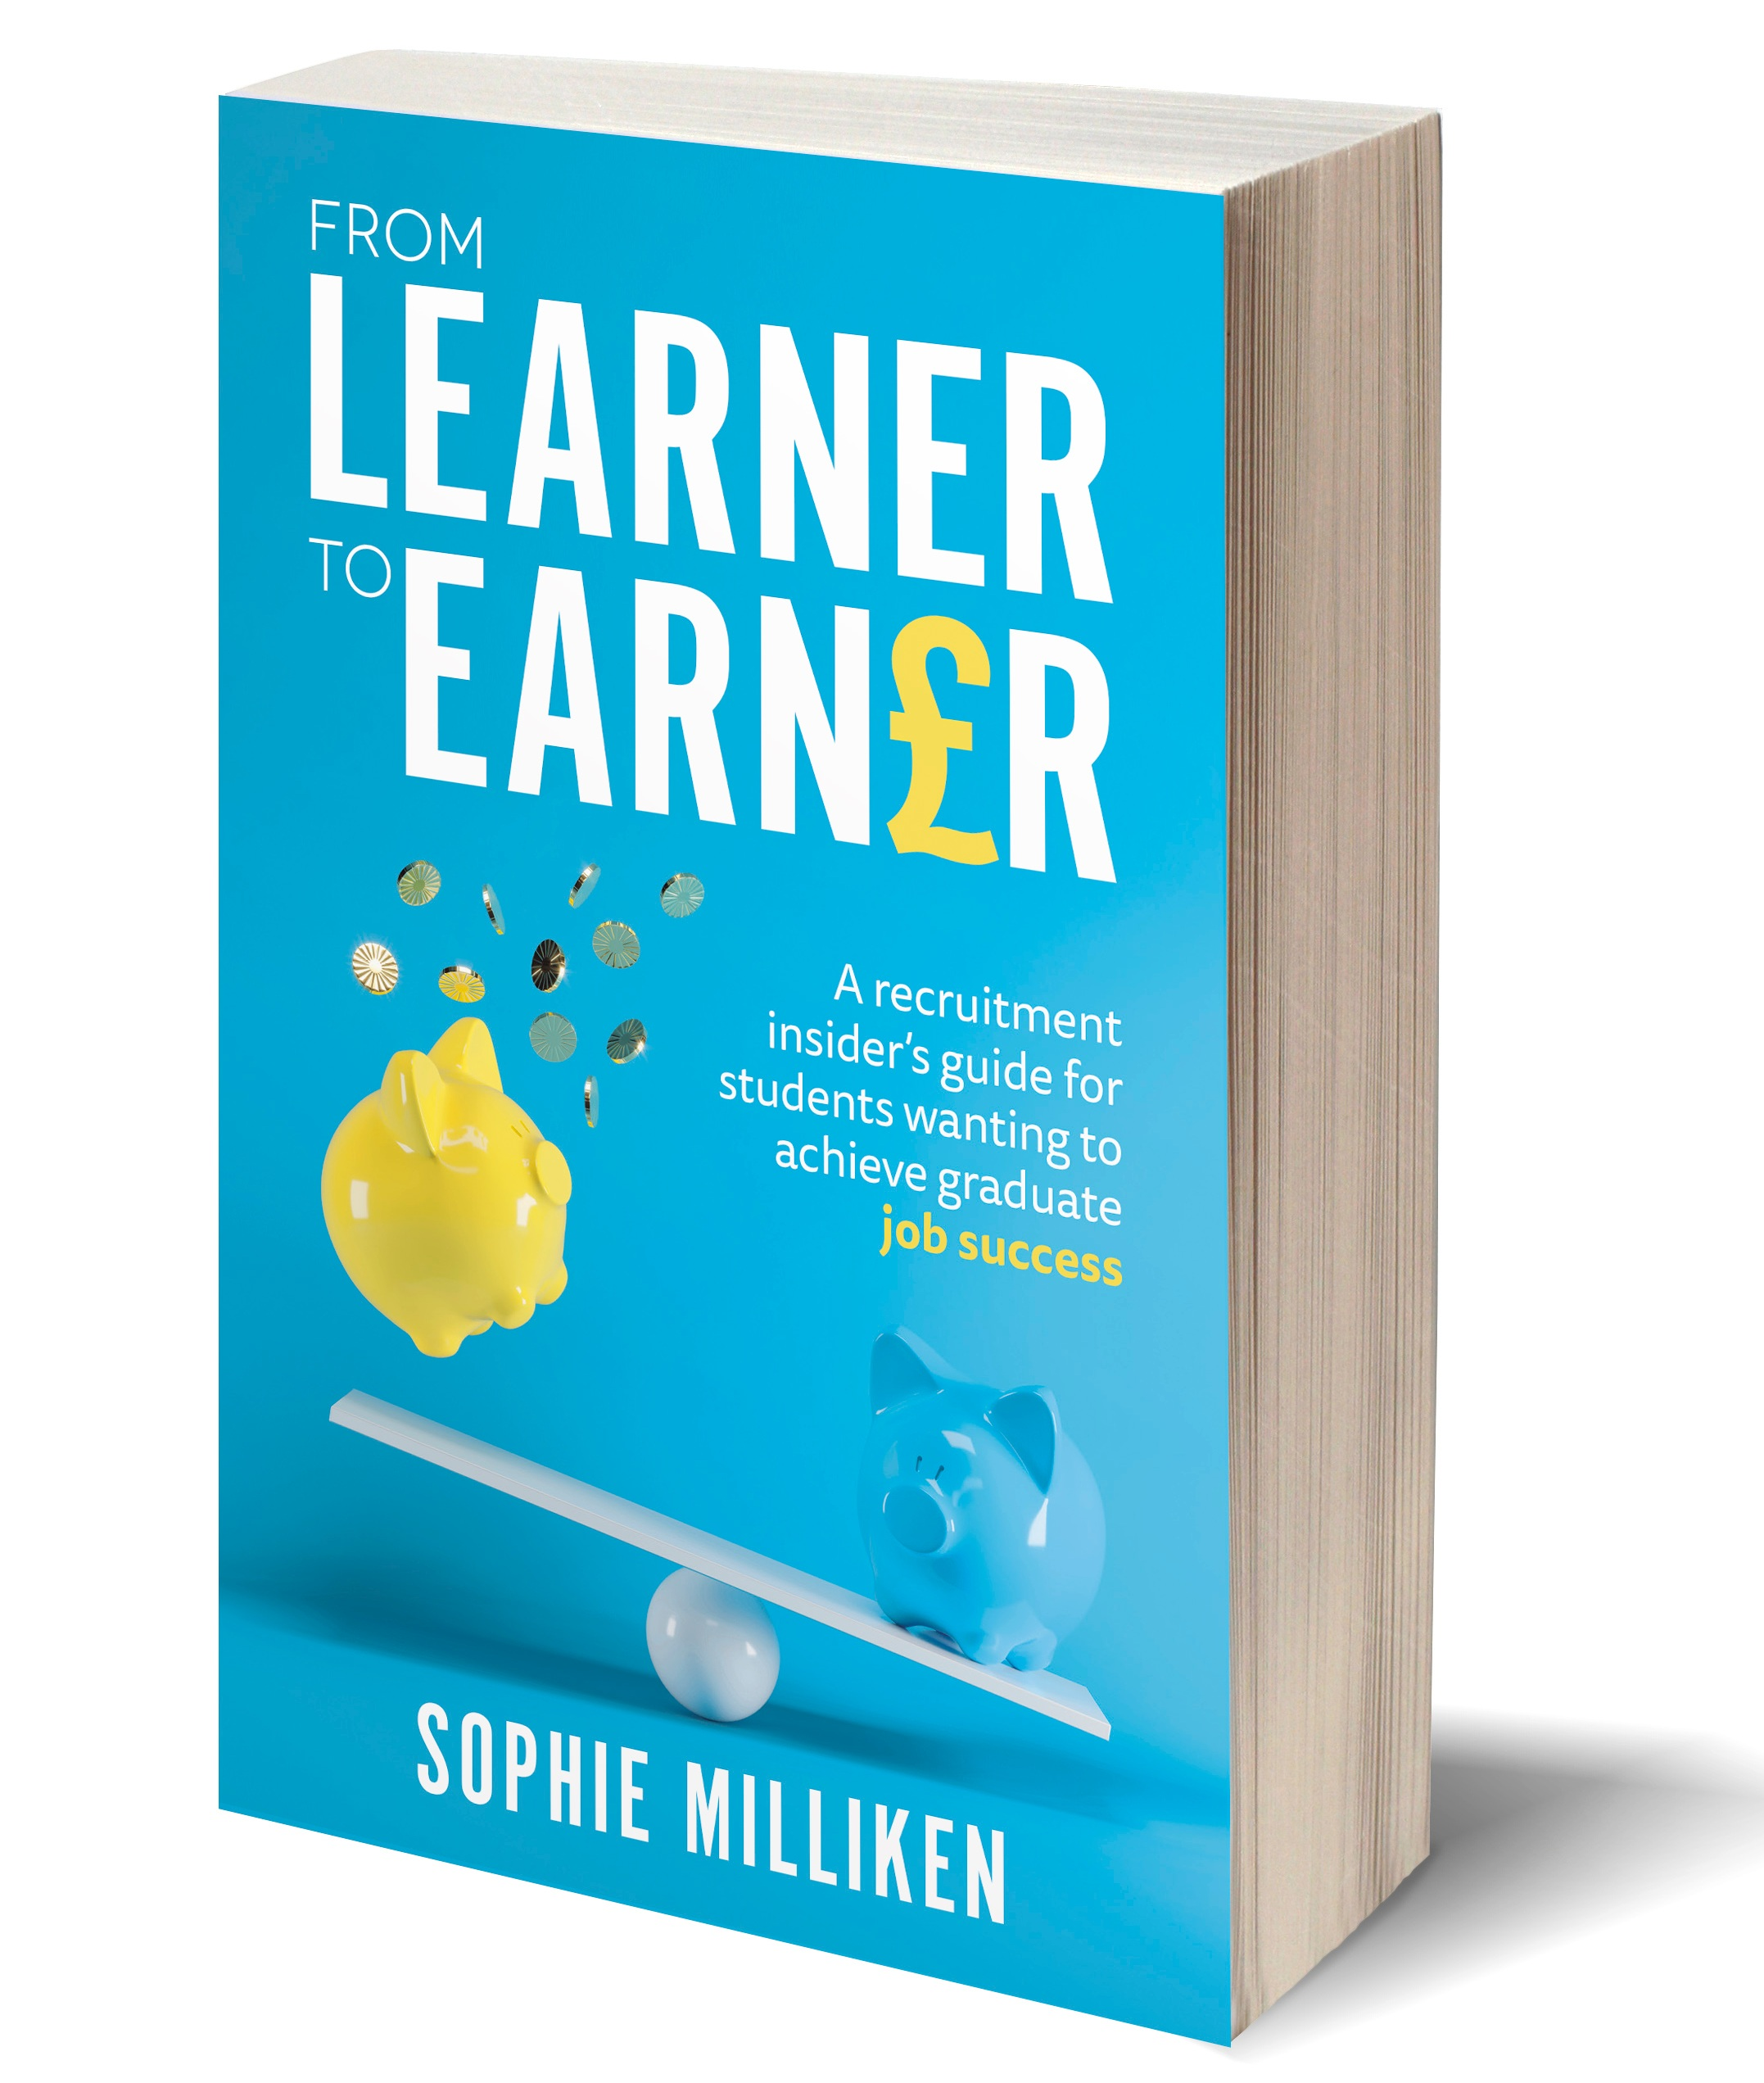 From+Earner+to+Learner+Book+Cover+3D-large+%281%29.jpg